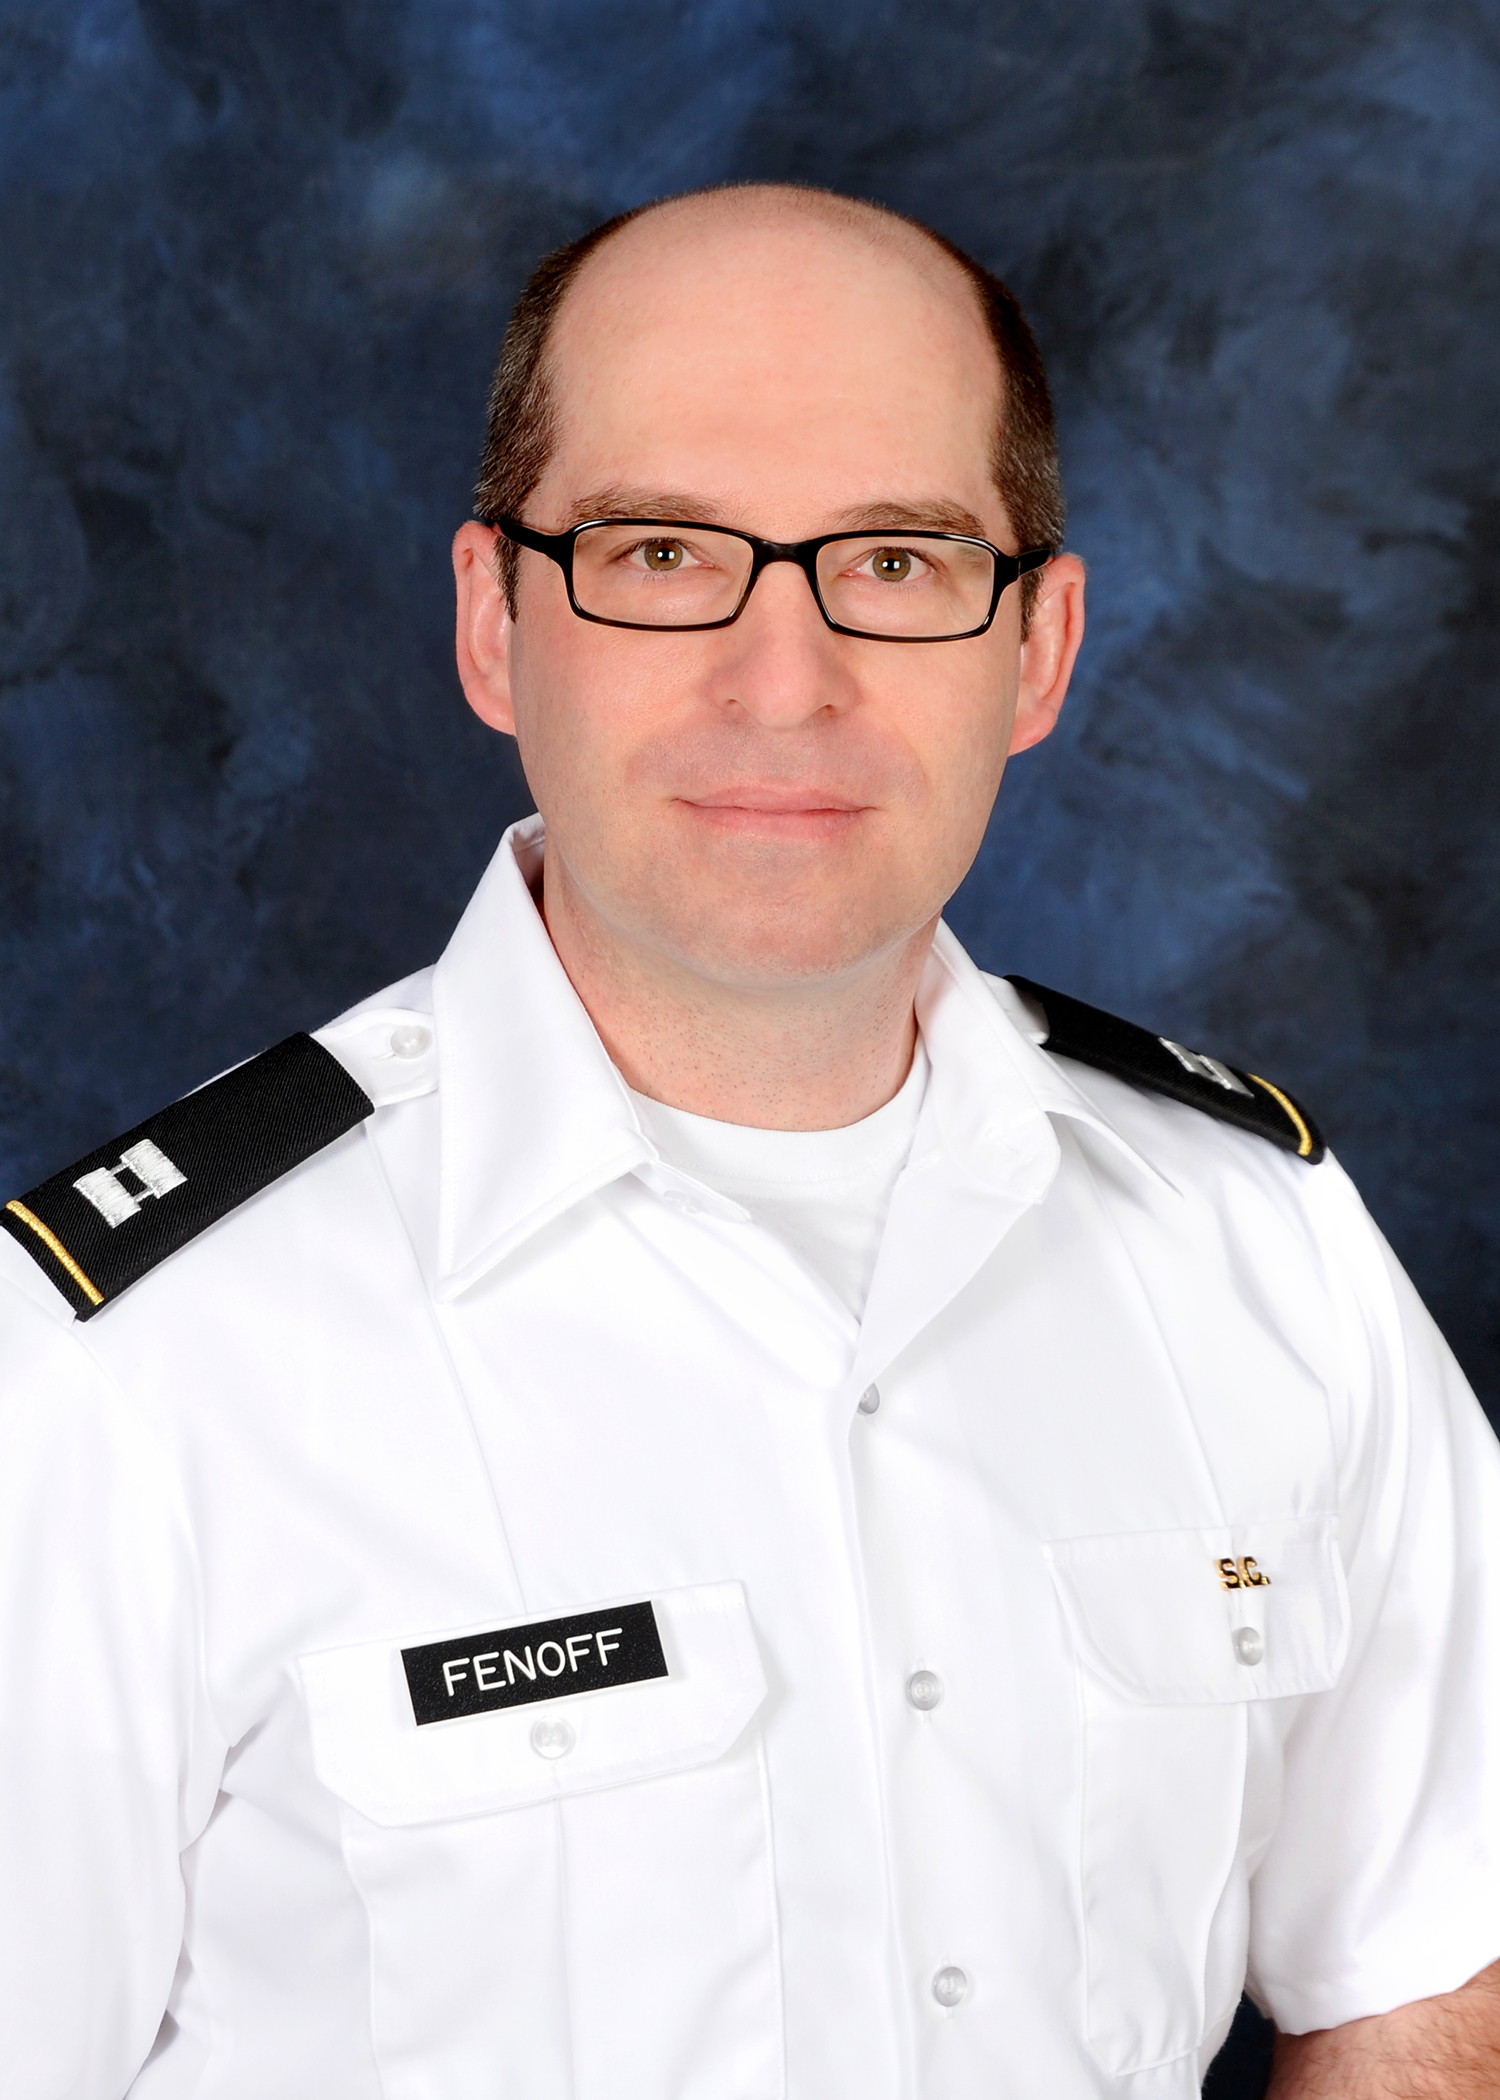 Roy Fenoff, Full Time Faculty, The Citadel Department of Criminal Justice